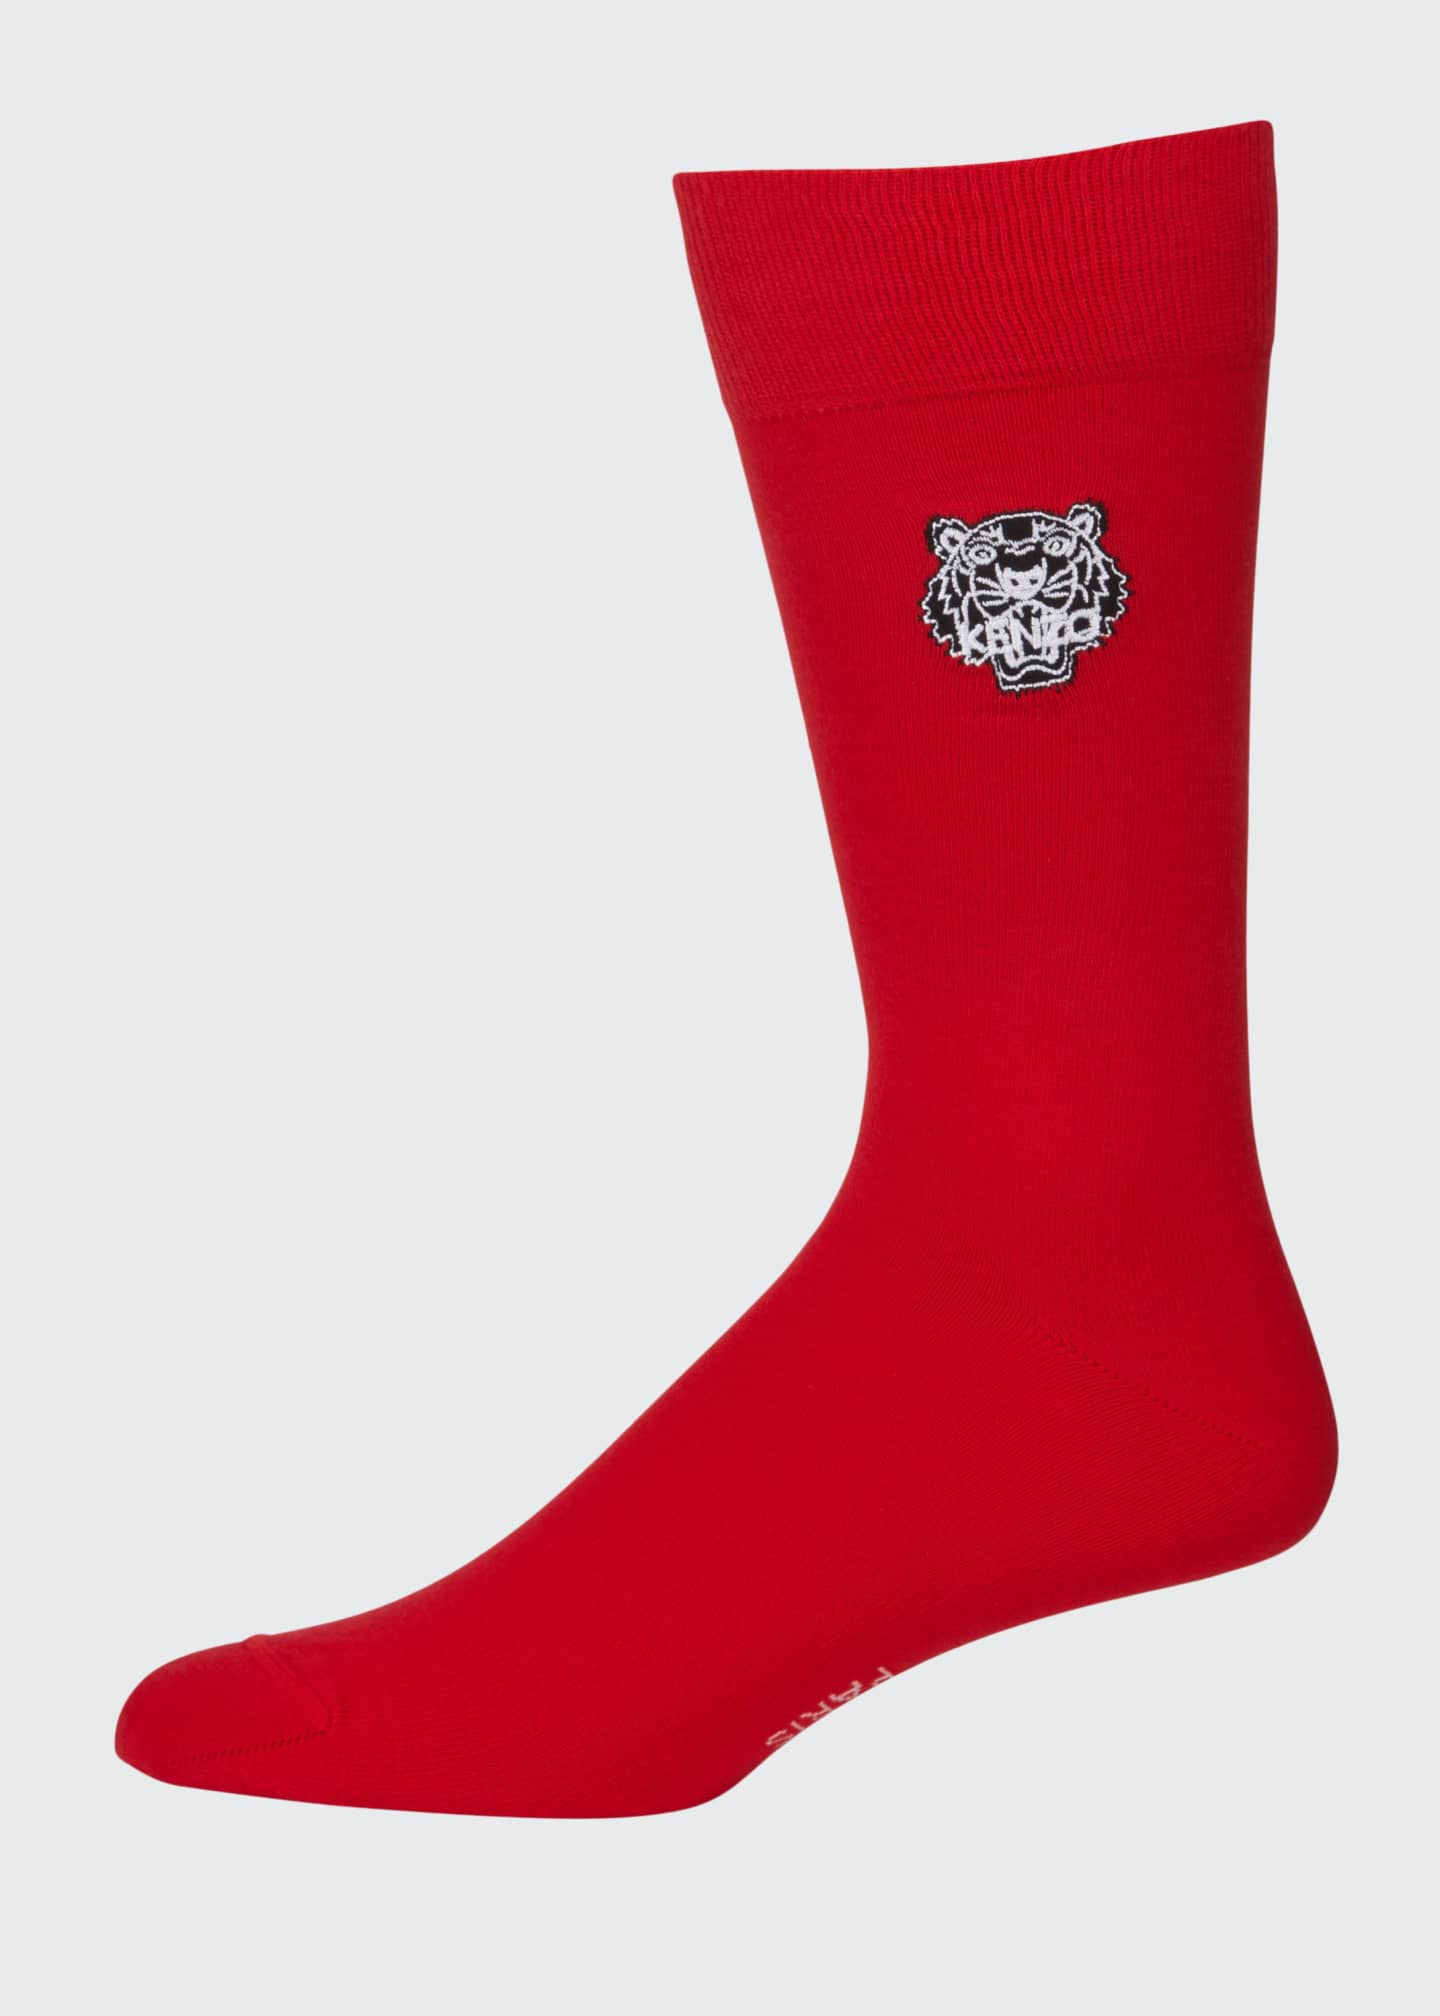 Kenzo Men's Tiger-Embroidered Socks